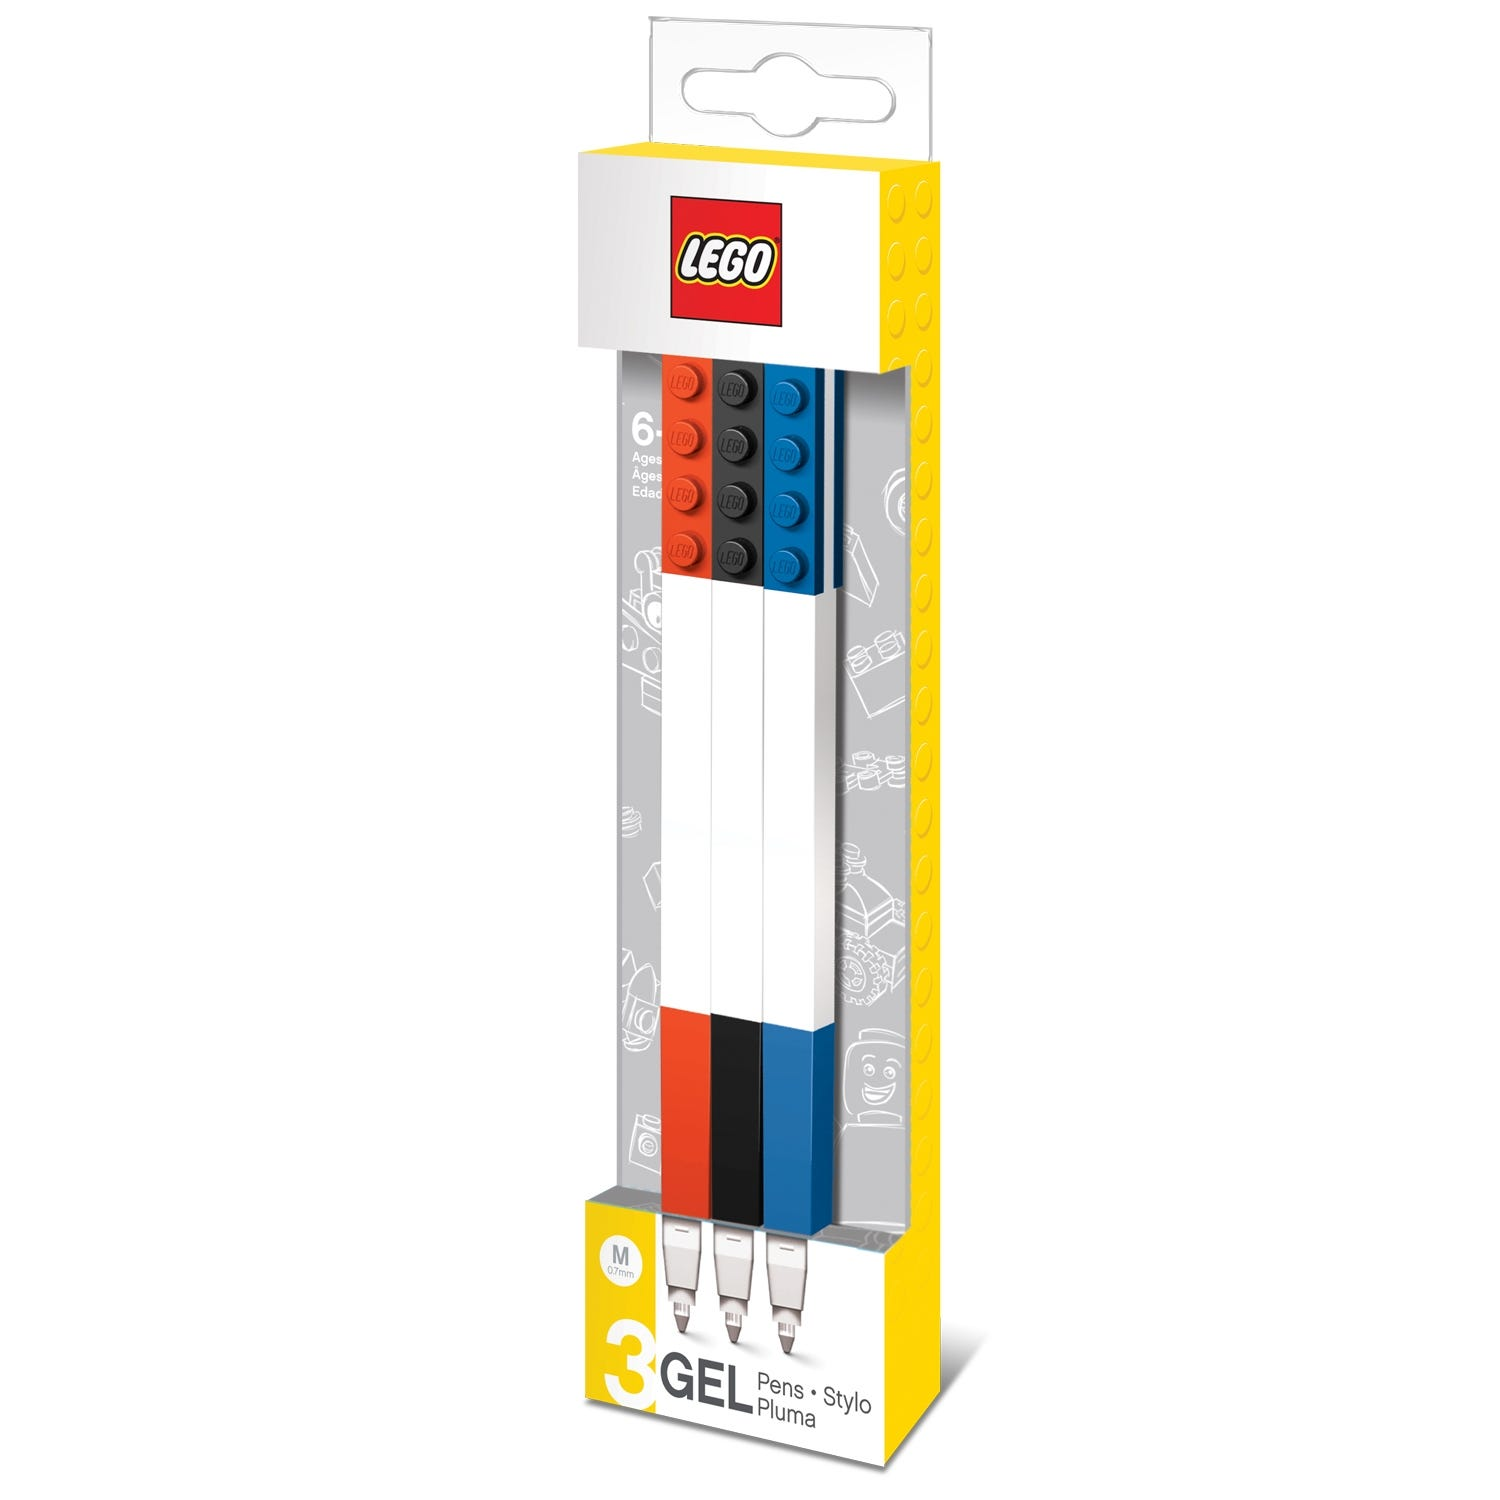 LEGO 3-Pack Gel Pen Set